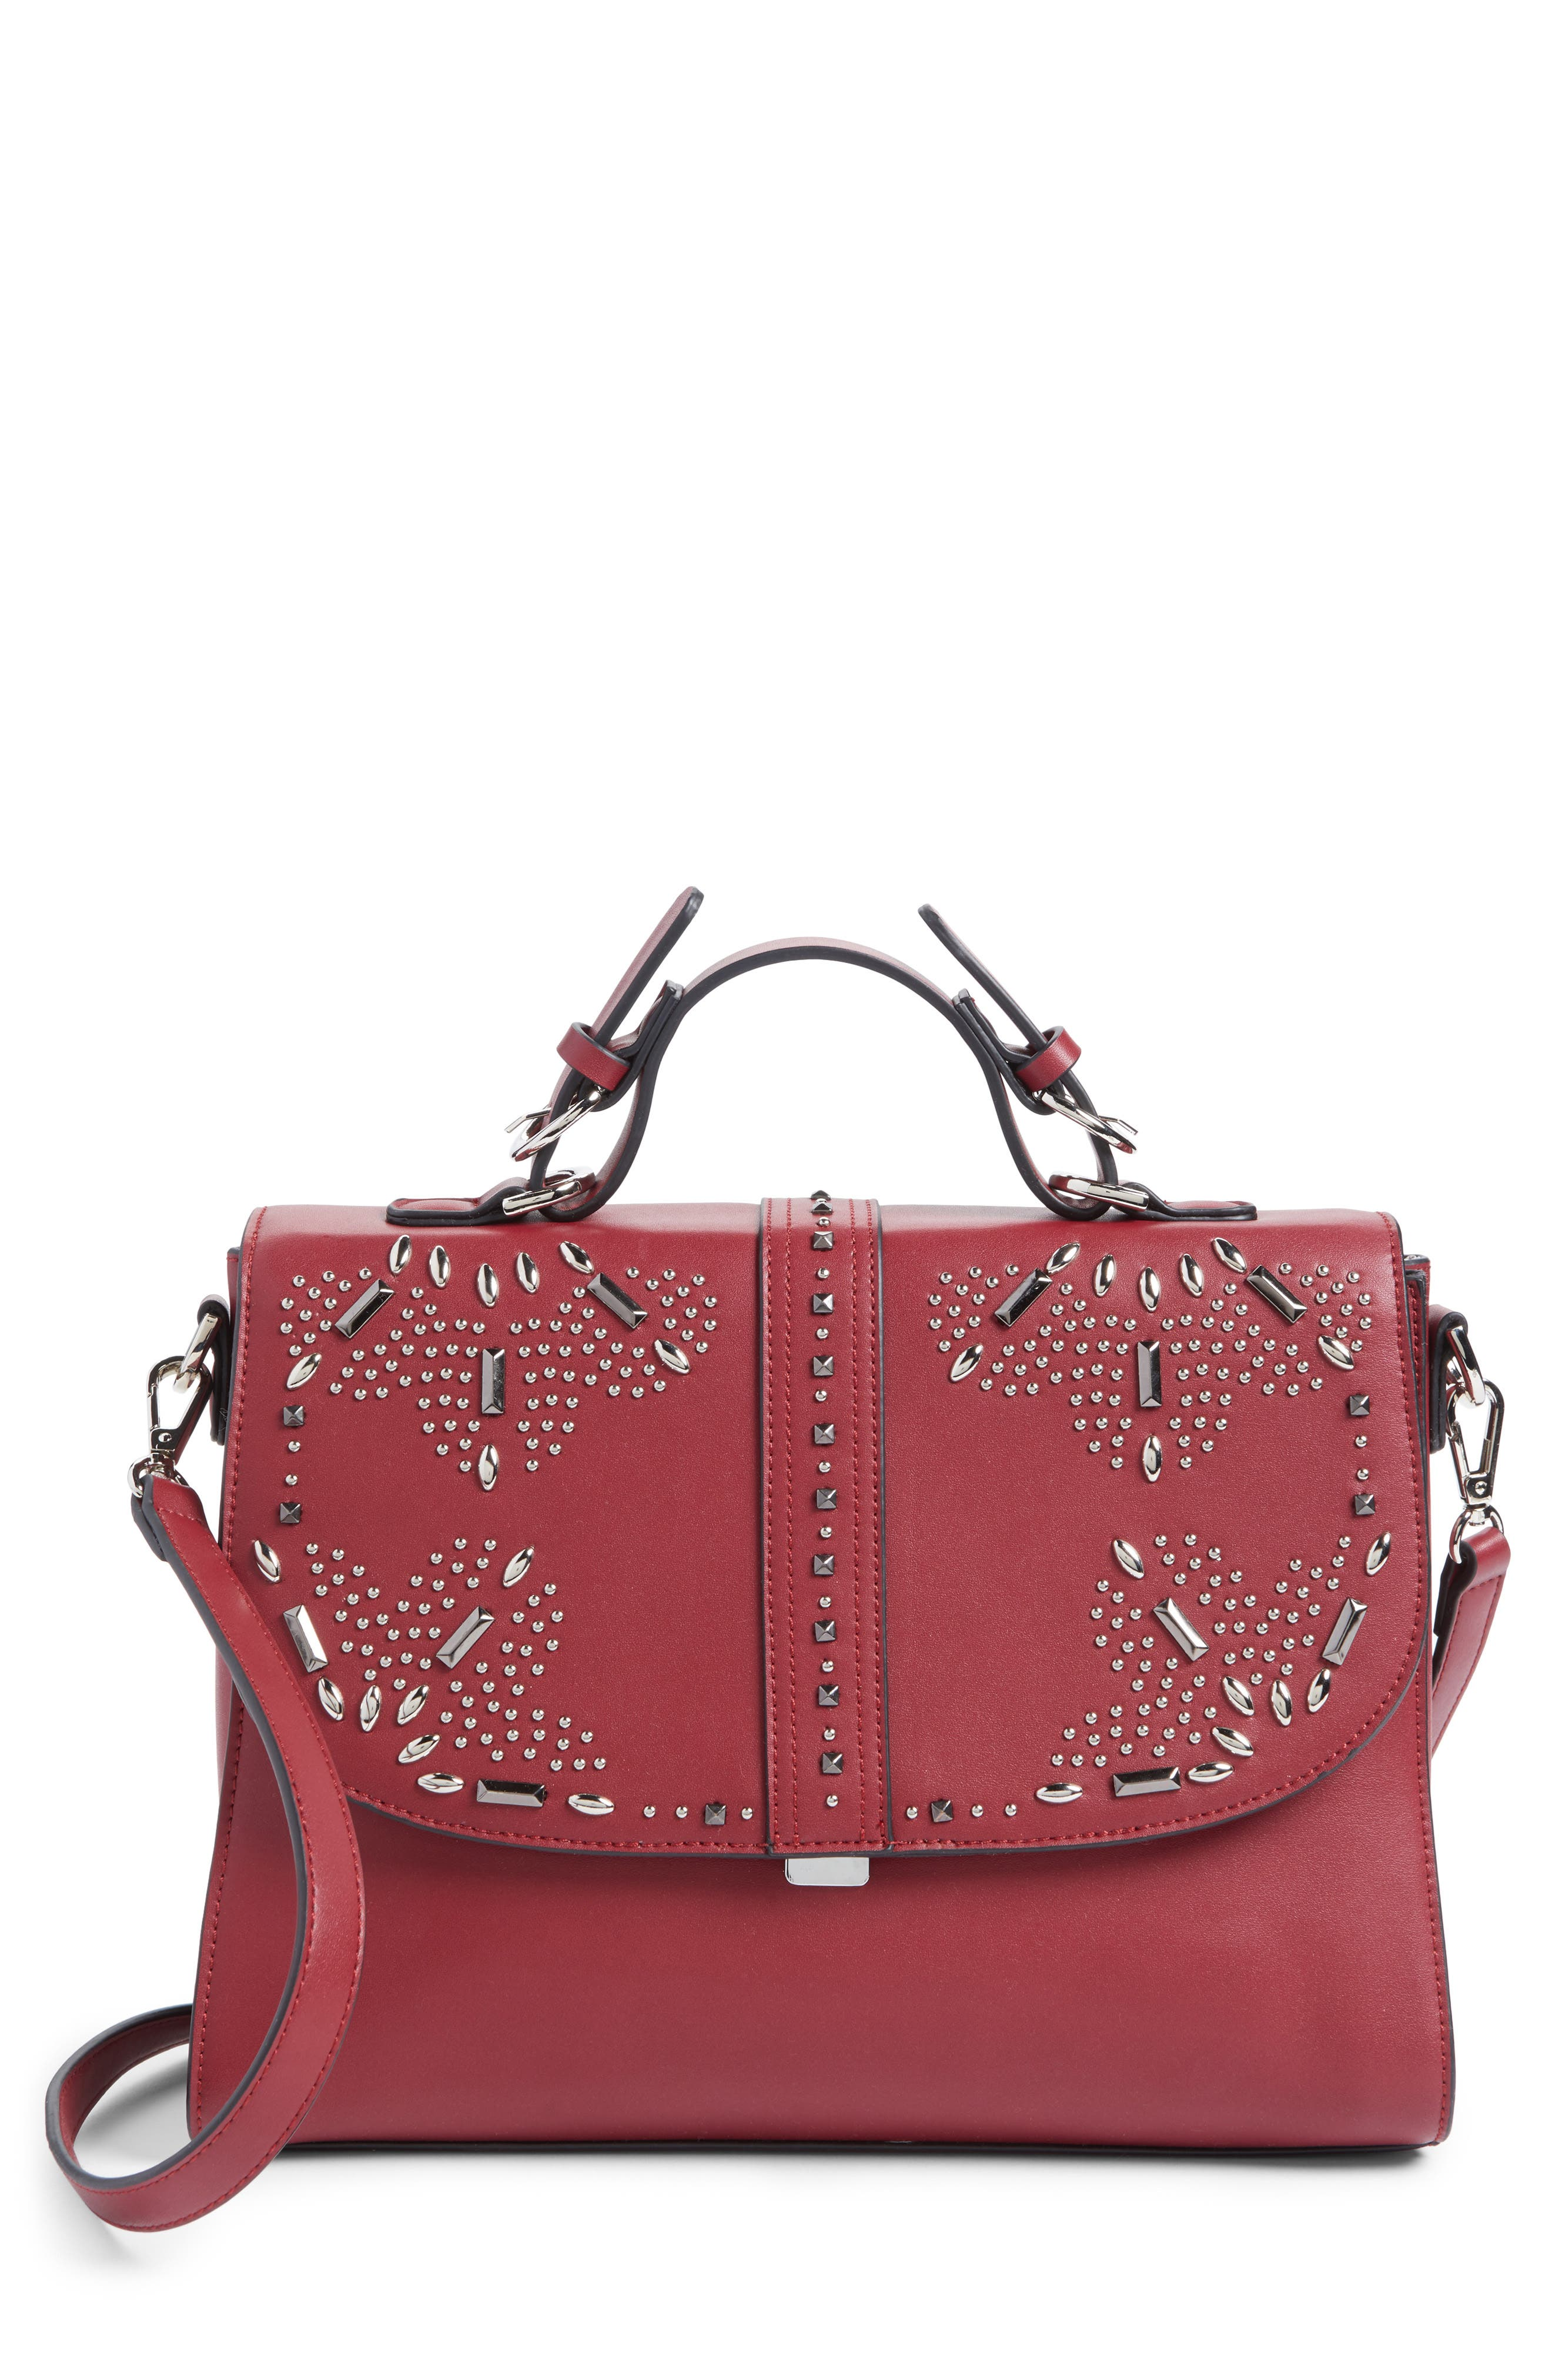 Blair Embellished Faux Leather Top Handle Satchel,                             Main thumbnail 1, color,                             Red Cerise